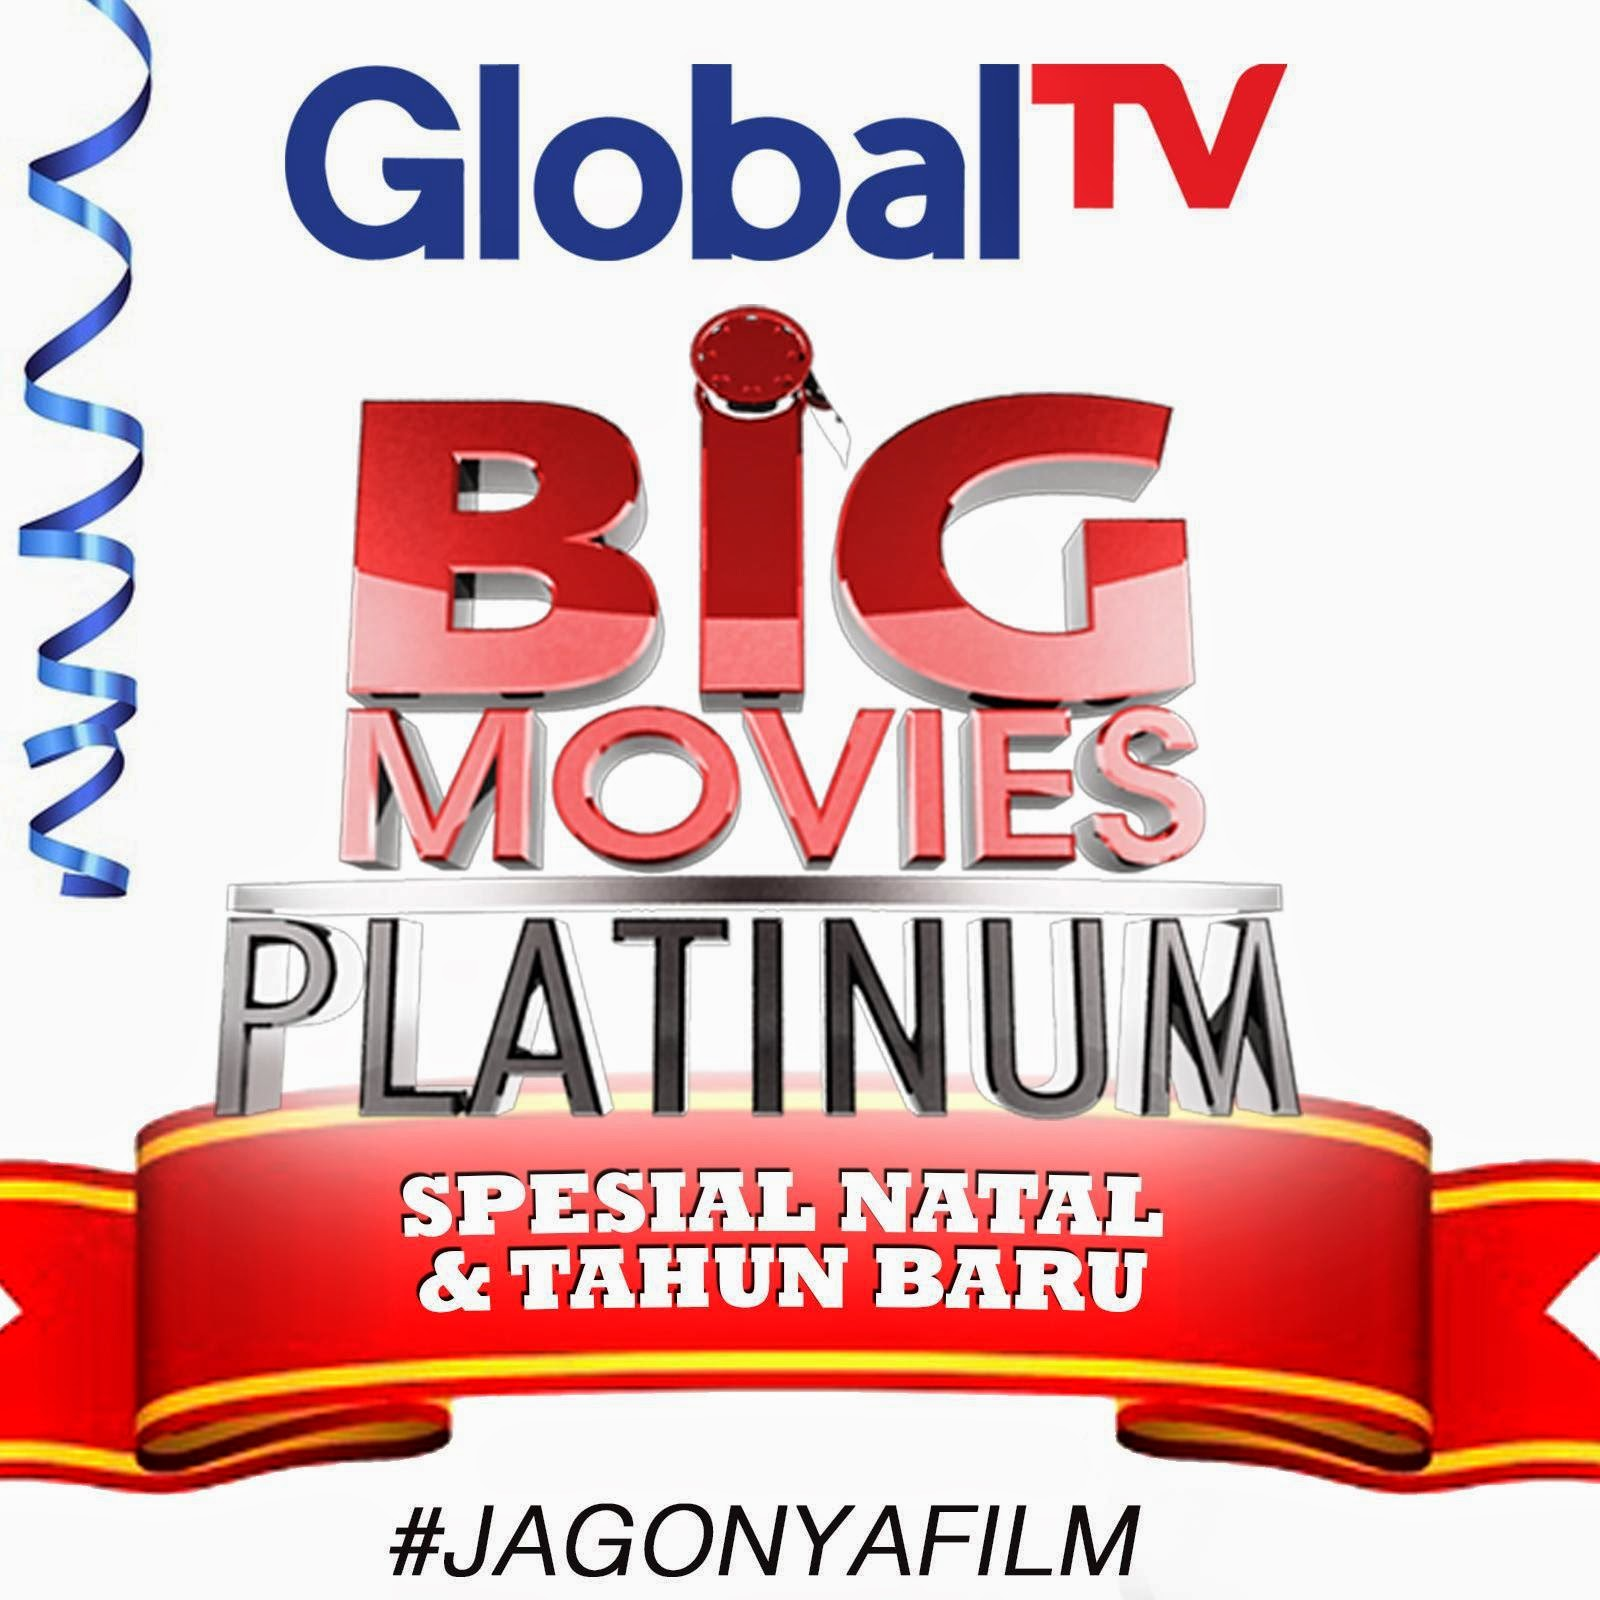 Soundtrack Iklan BIG MOVIES PLATINUM Spesial NATAL & TAHUN BARU Global TV